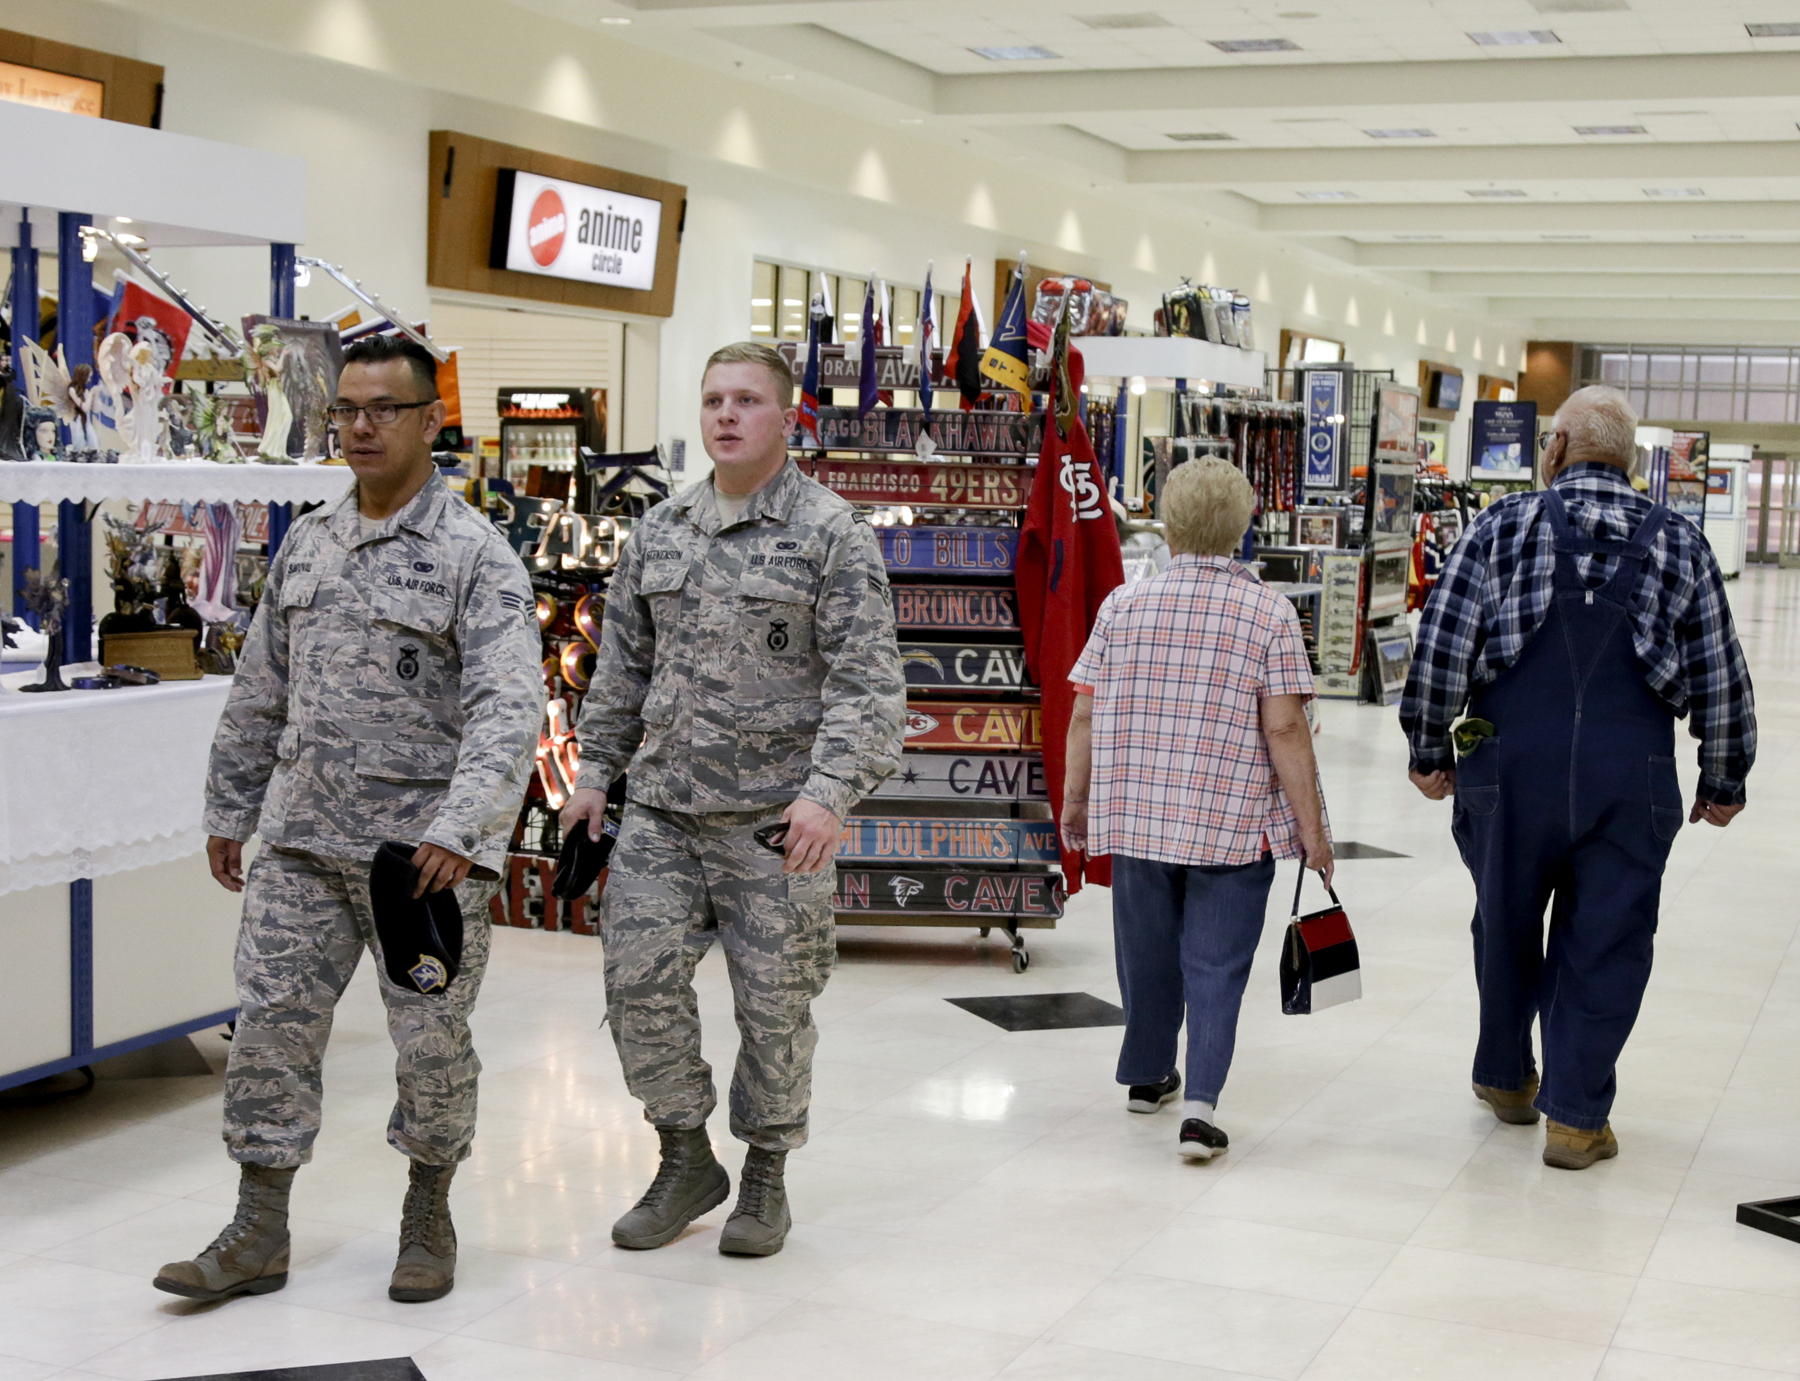 Honorably discharged veterans will soon get to shop tax-free - photo#9